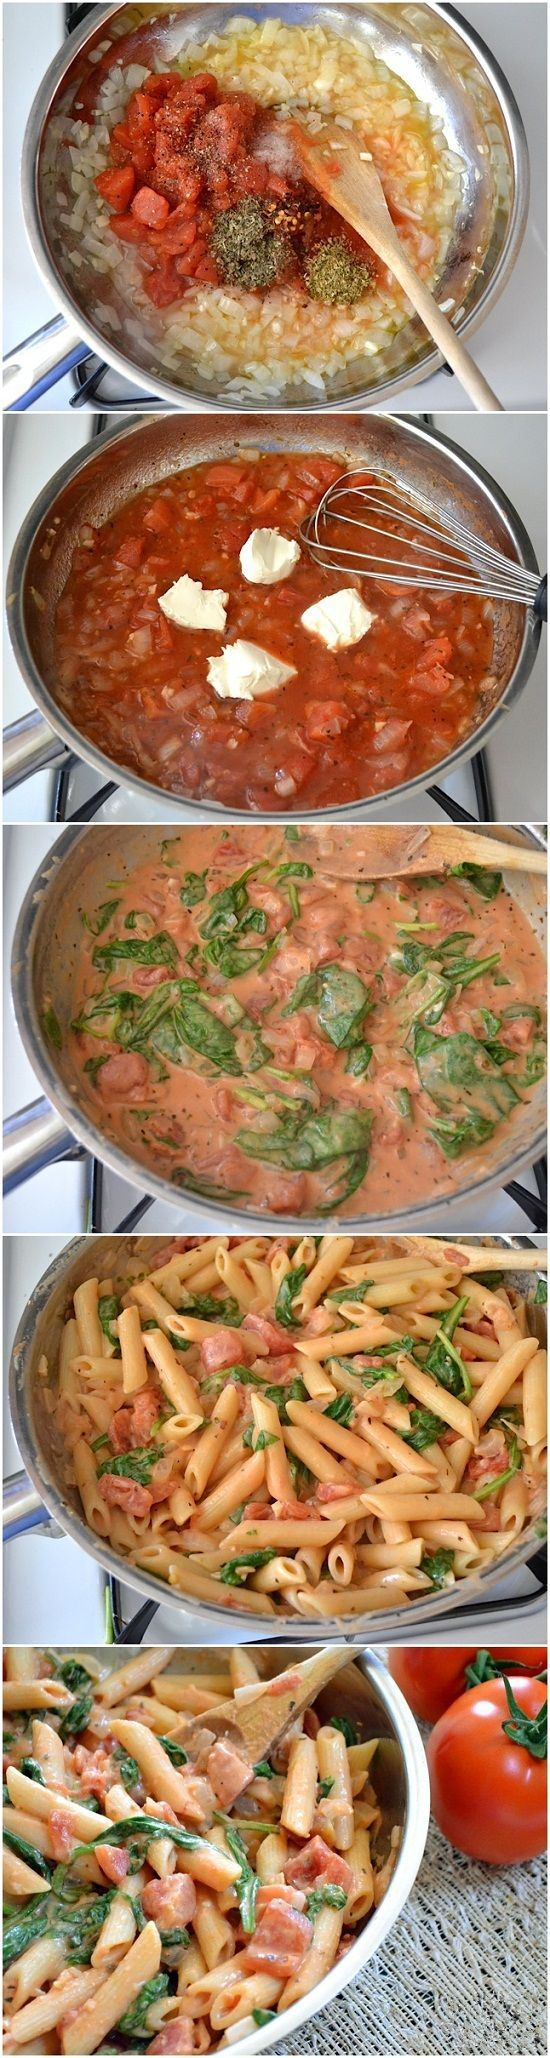 Creamy tomato and spinach pasta healthy and yummy food recipes creamy tomato and spinach pasta healthy and yummy food recipes the recipes blog forumfinder Images